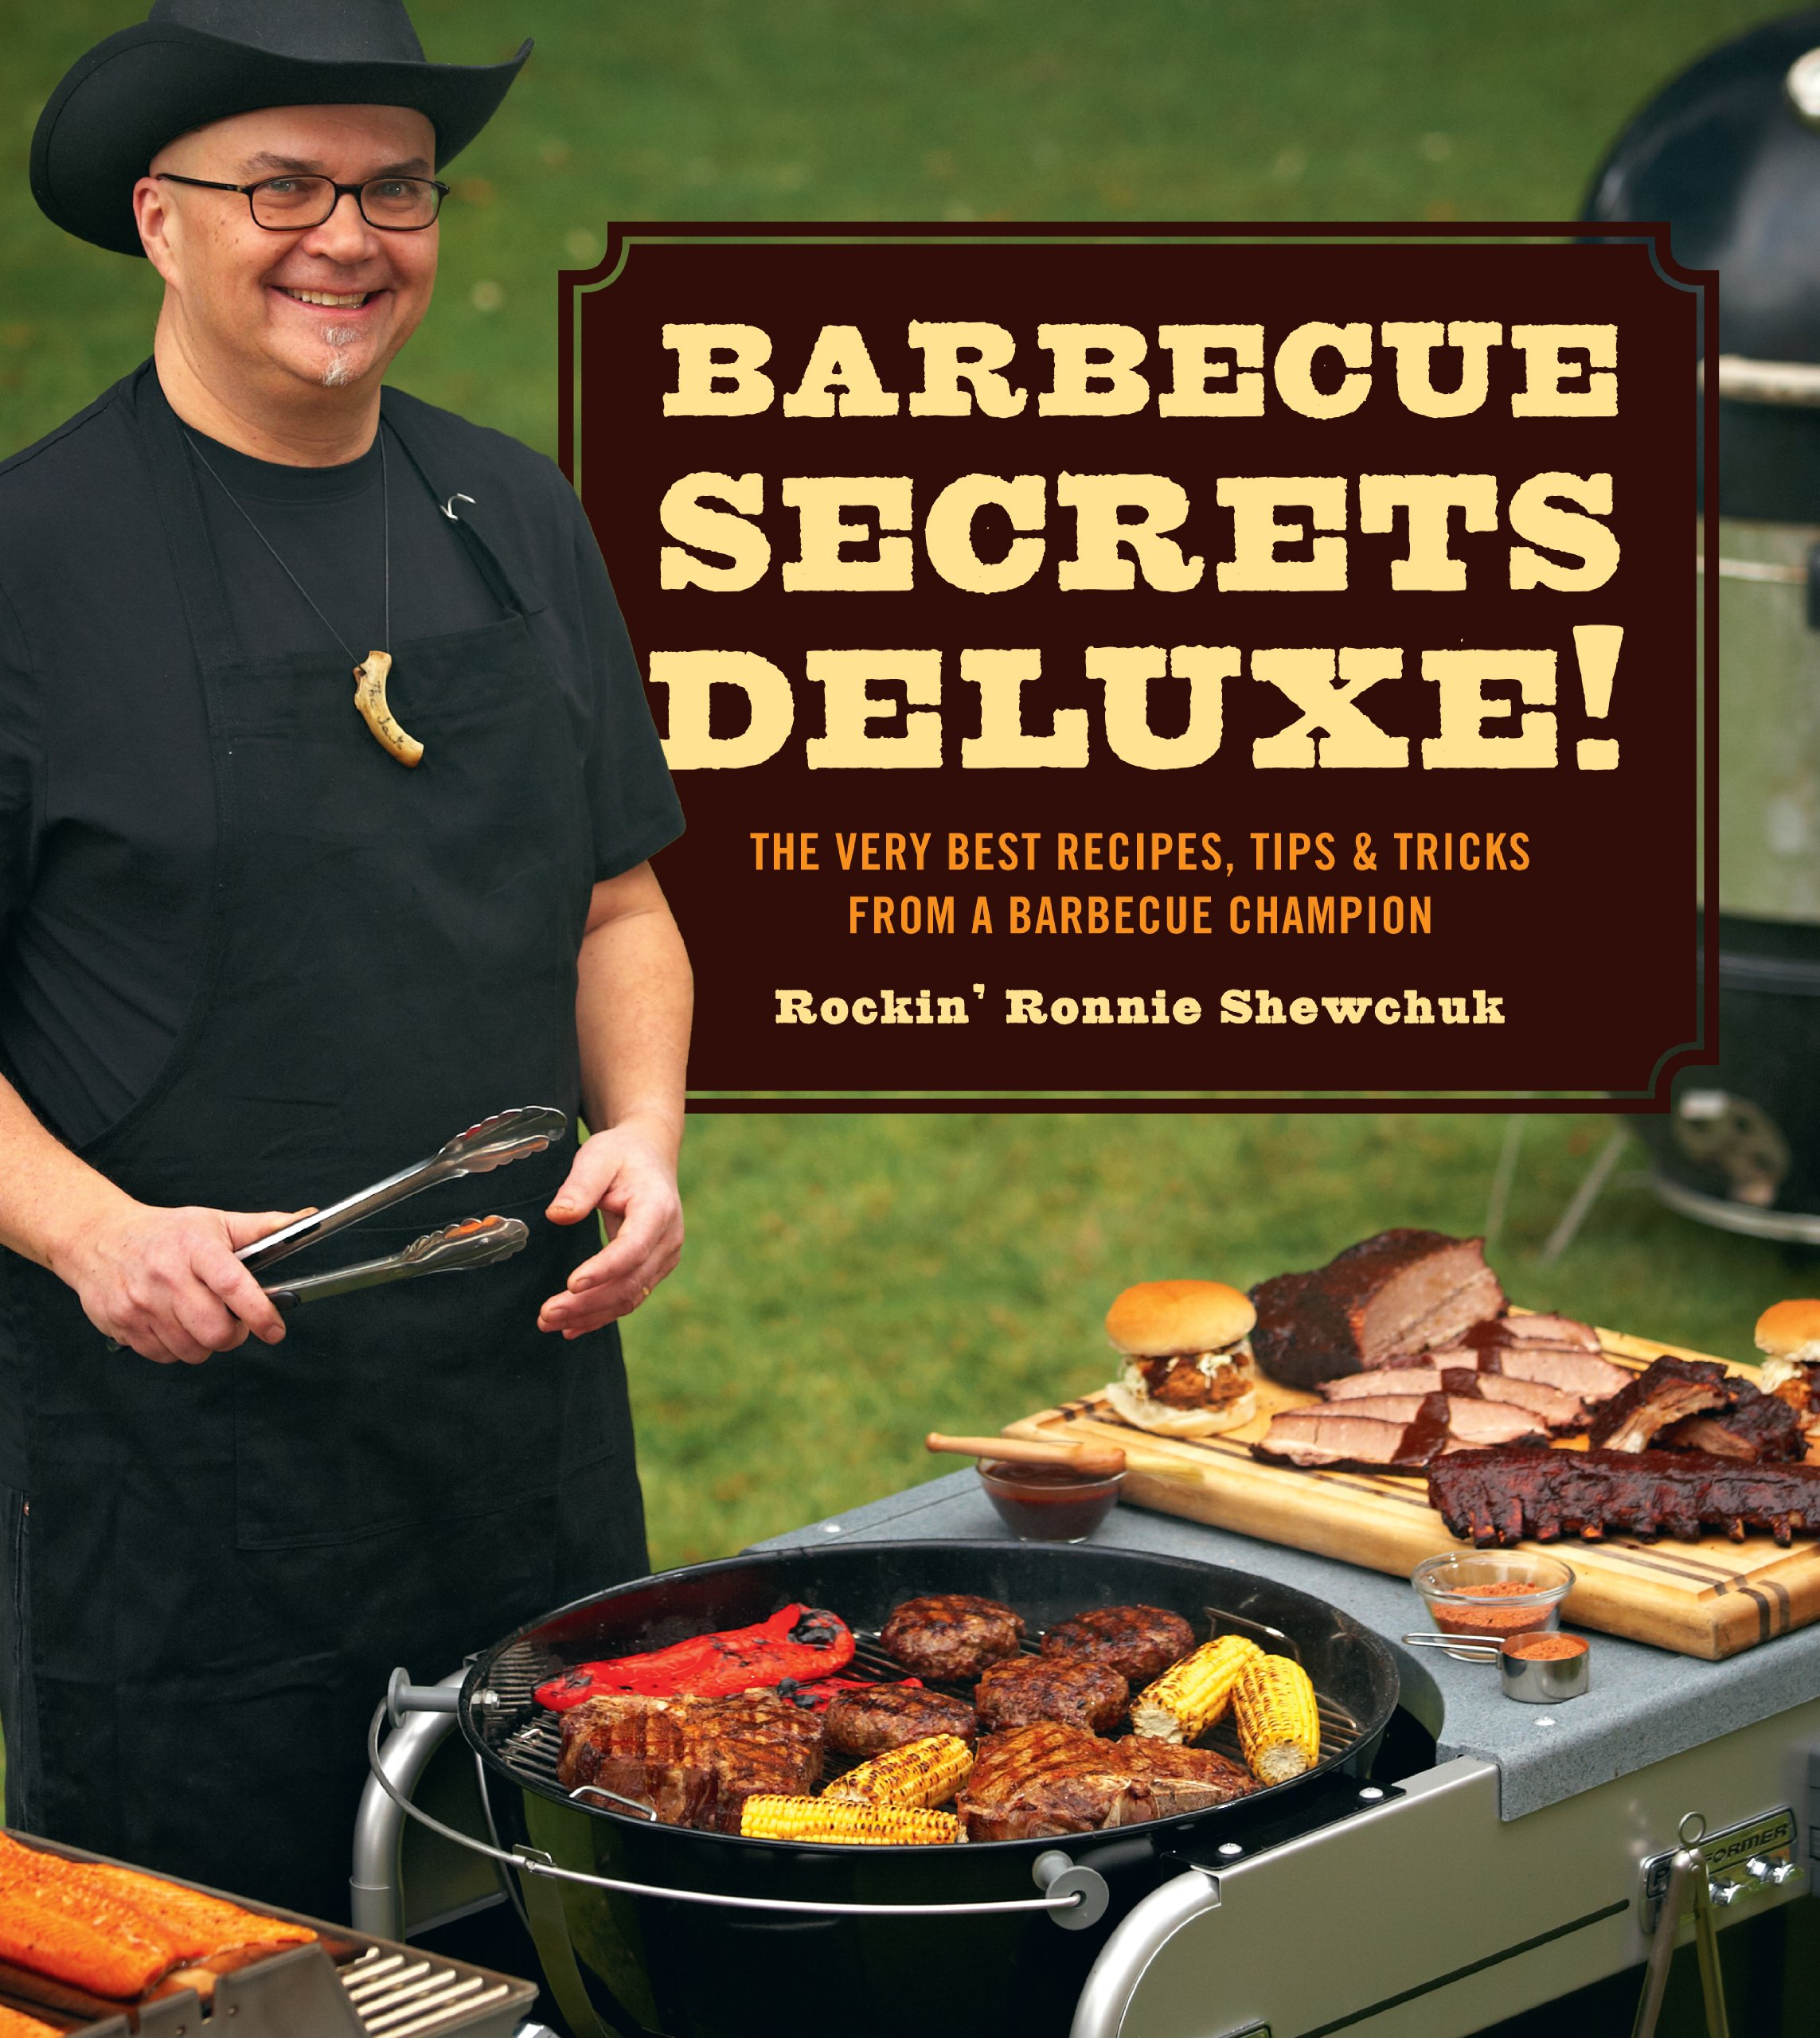 Download BBQ Secrets Deluxe: The Very Best Recipes, Tips & Tricks from a Barbecue Champion PDF